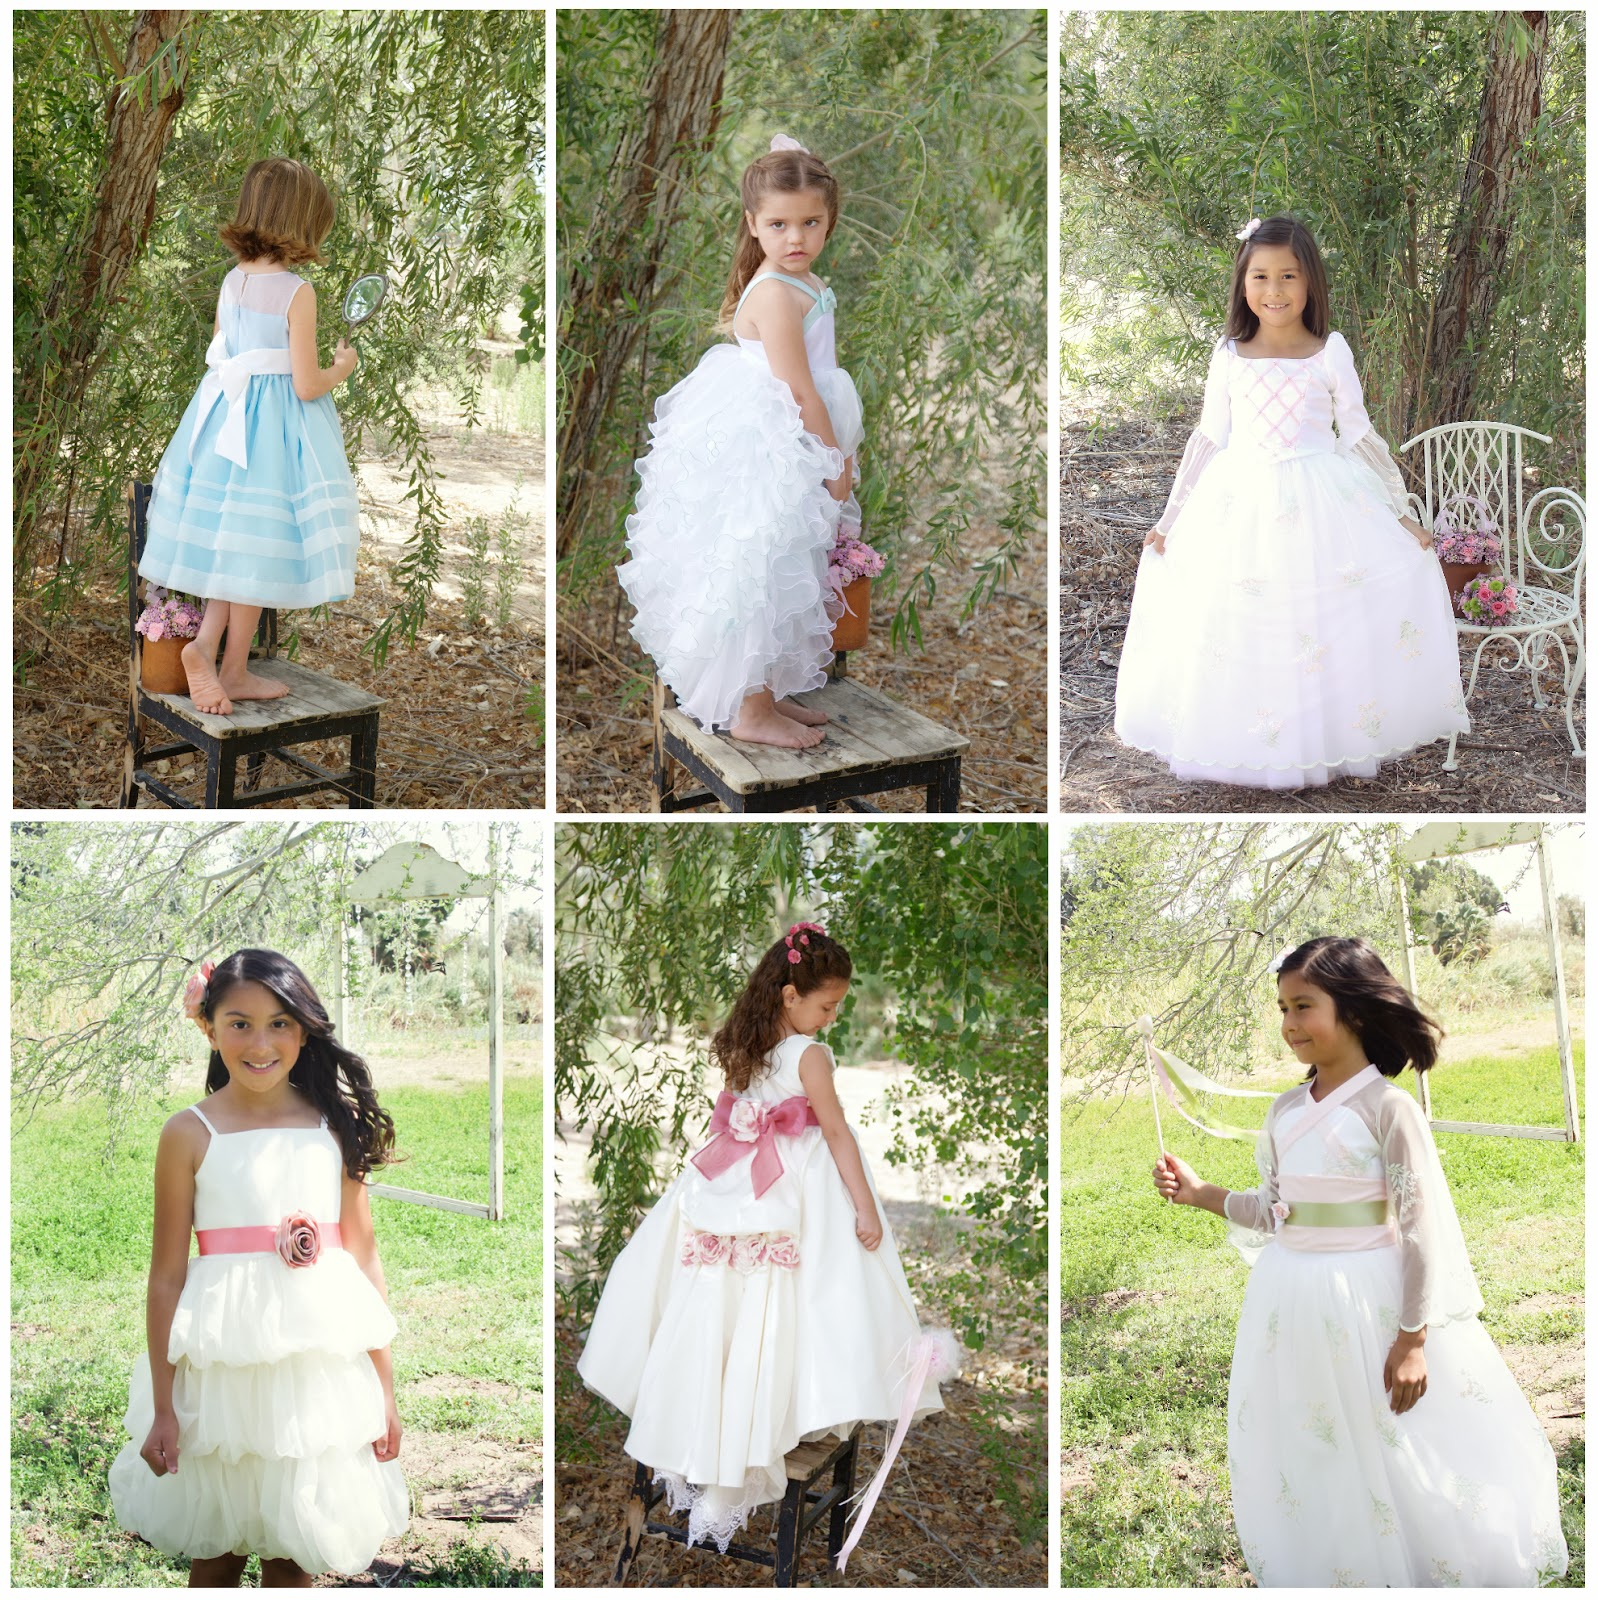 Wedding Dresses Yuma Az : Design by lannette tea party in the meadow